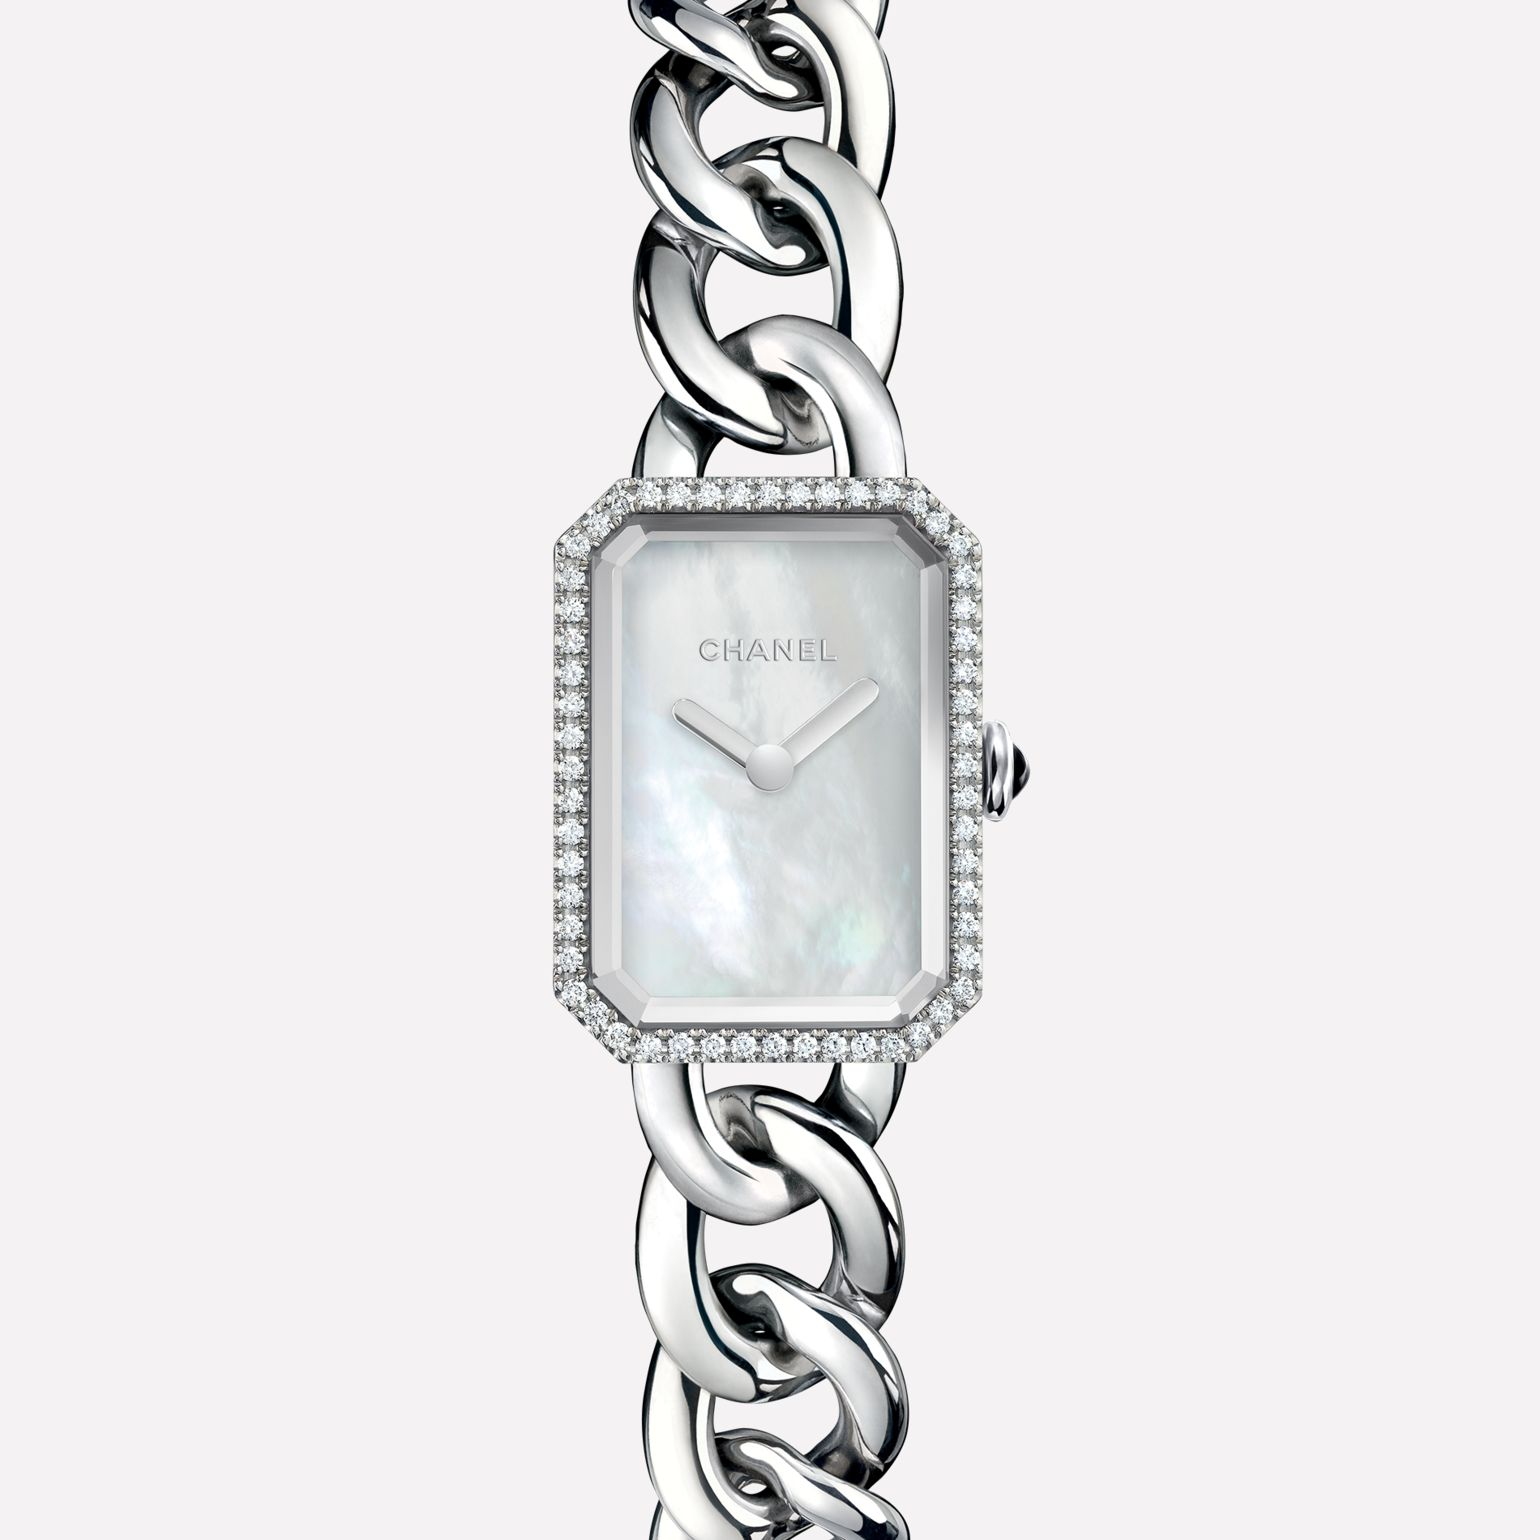 Première Chaîne Small version, steel and diamonds, white mother-of-pearl dial